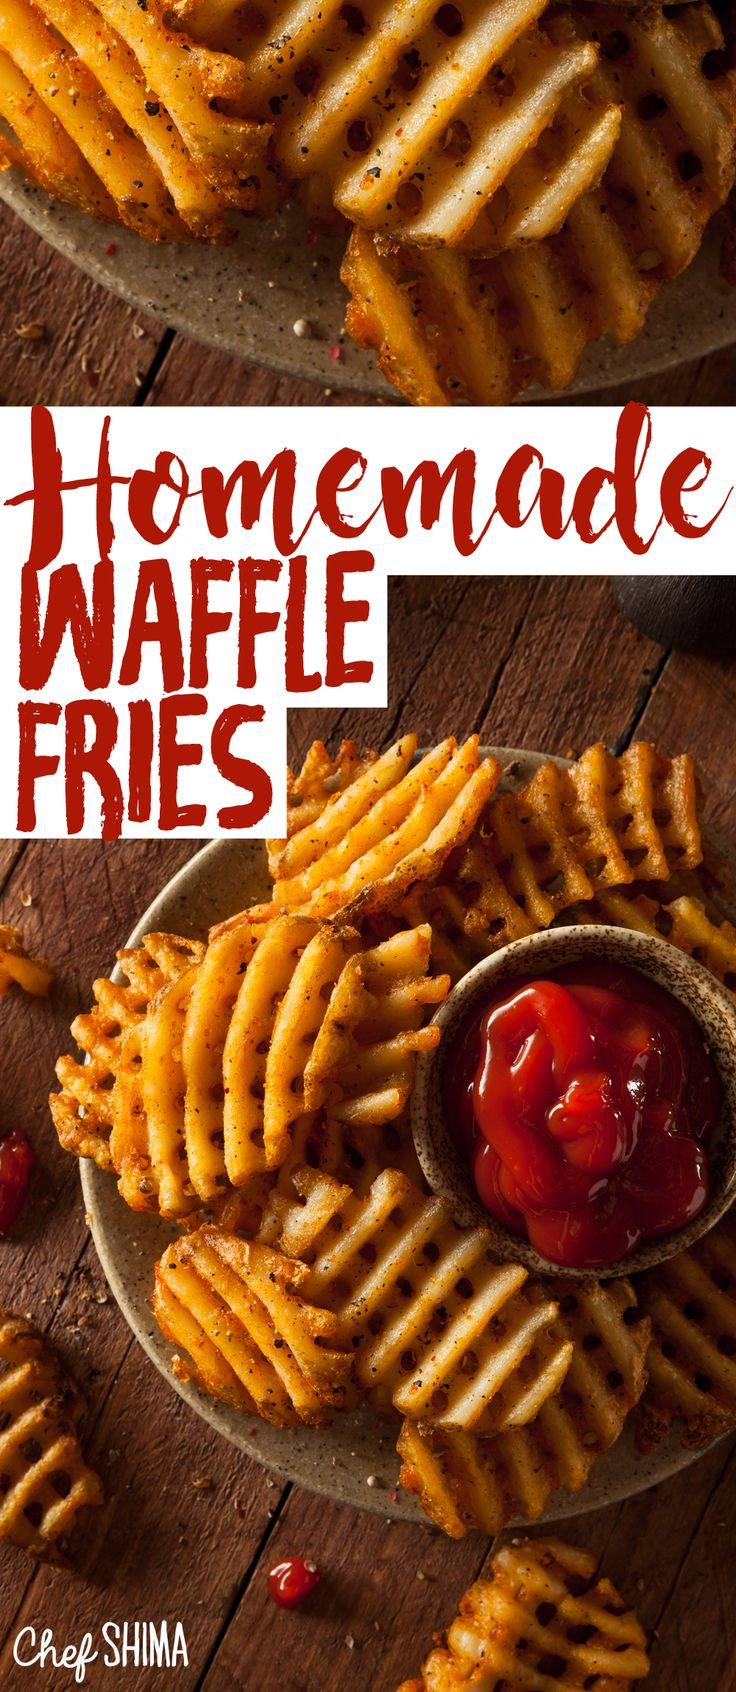 Homemade Waffle Fries | AWESOME recipe. Tastes amazing... and doesn't take a long time!